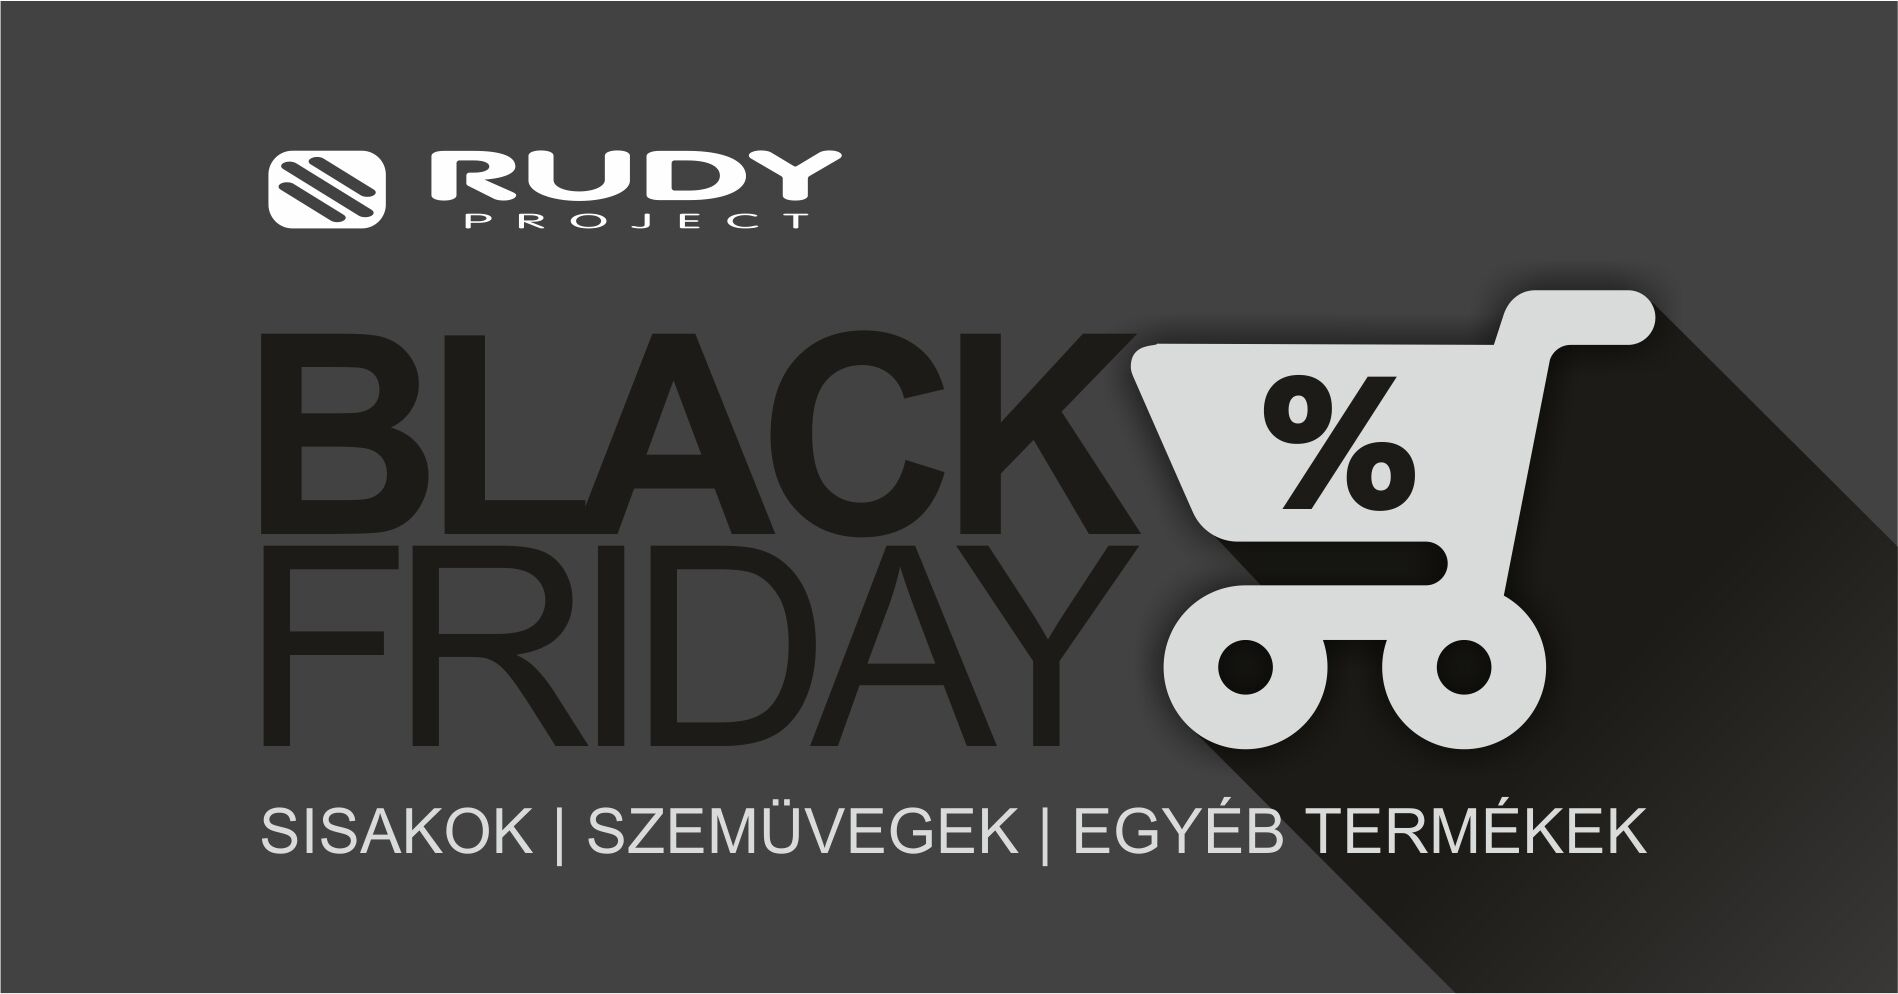 235f7ae76d5d BLACK FRIDAY - RUDY PROJECT 2019